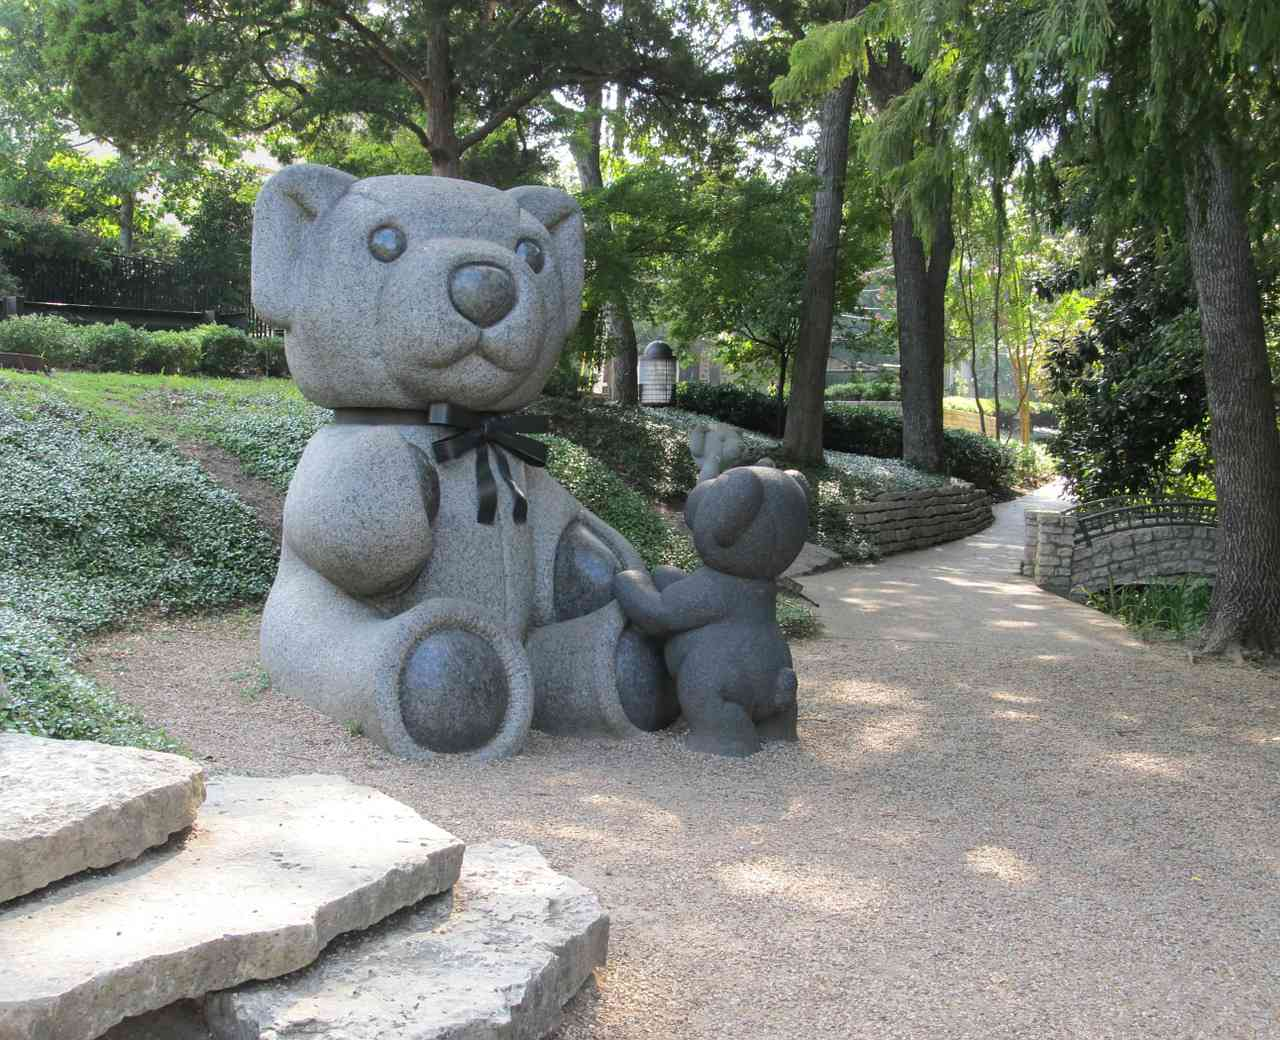 Sitting teddy bear sculpture with a smaller bear standing by the bigger bear's foot